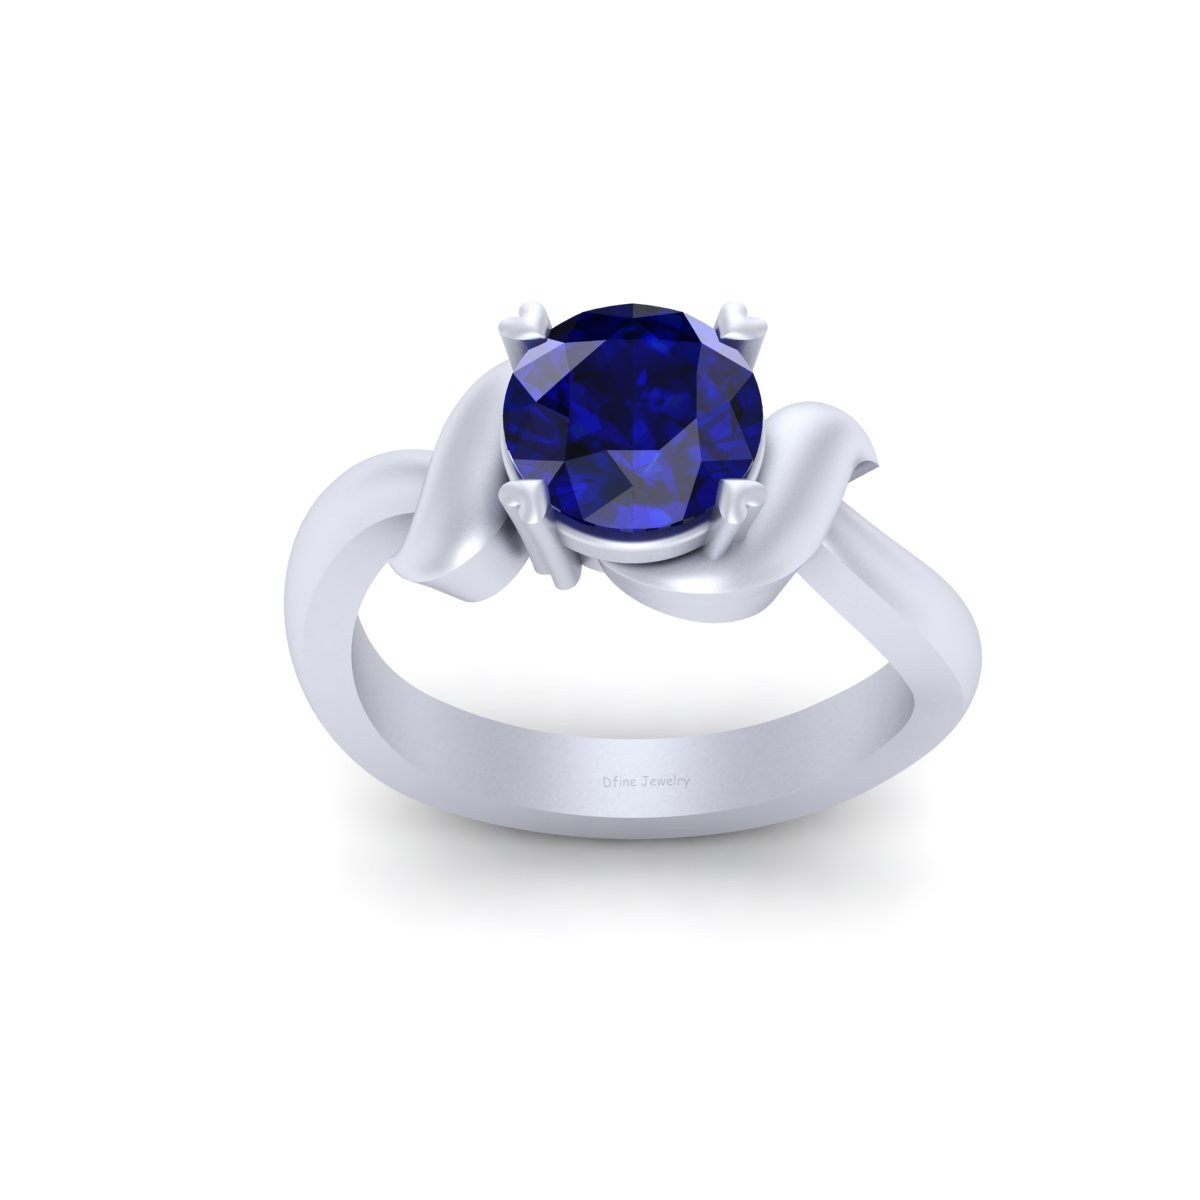 Droid Robot R2D2 Inspired Engagement Ring